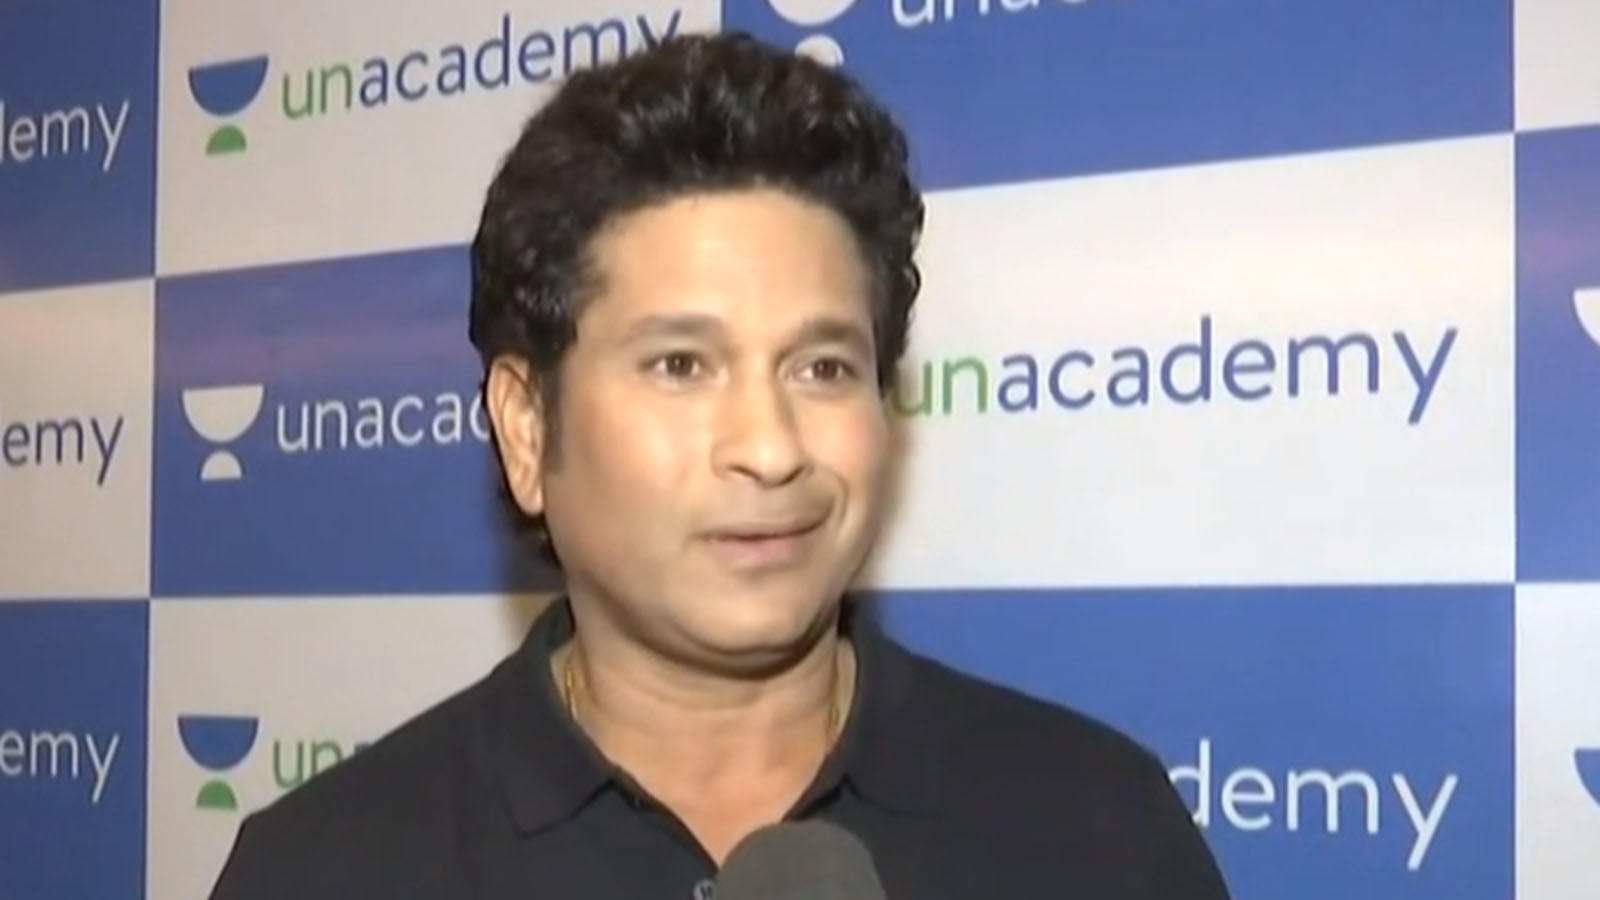 sachin-tendulkar-to-share-his-experience-online-for-first-time